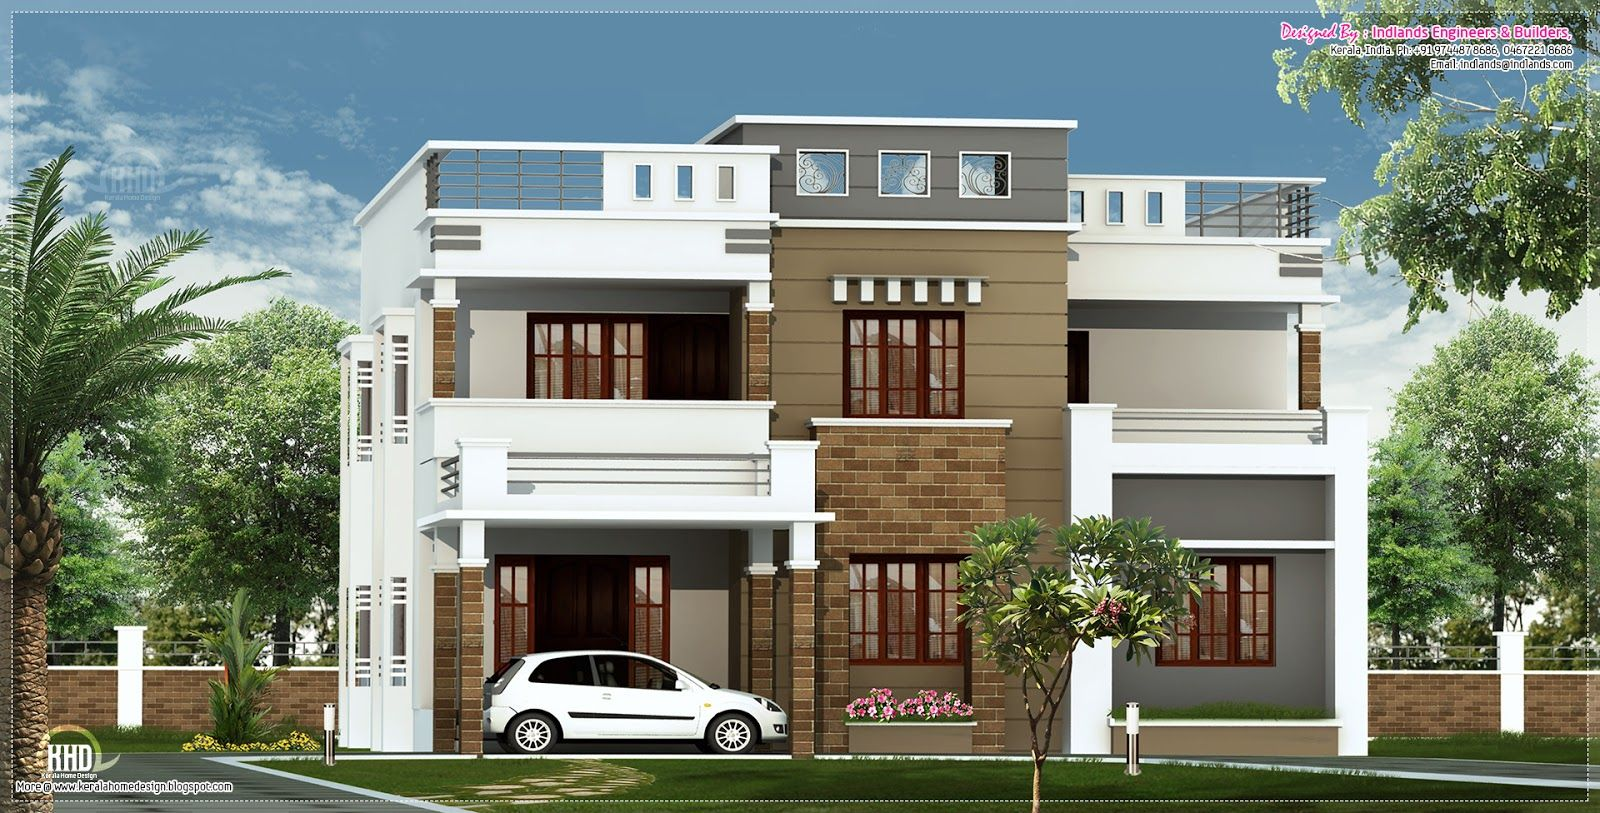 4 Bedroom House With Roof Terrace Plans - Google